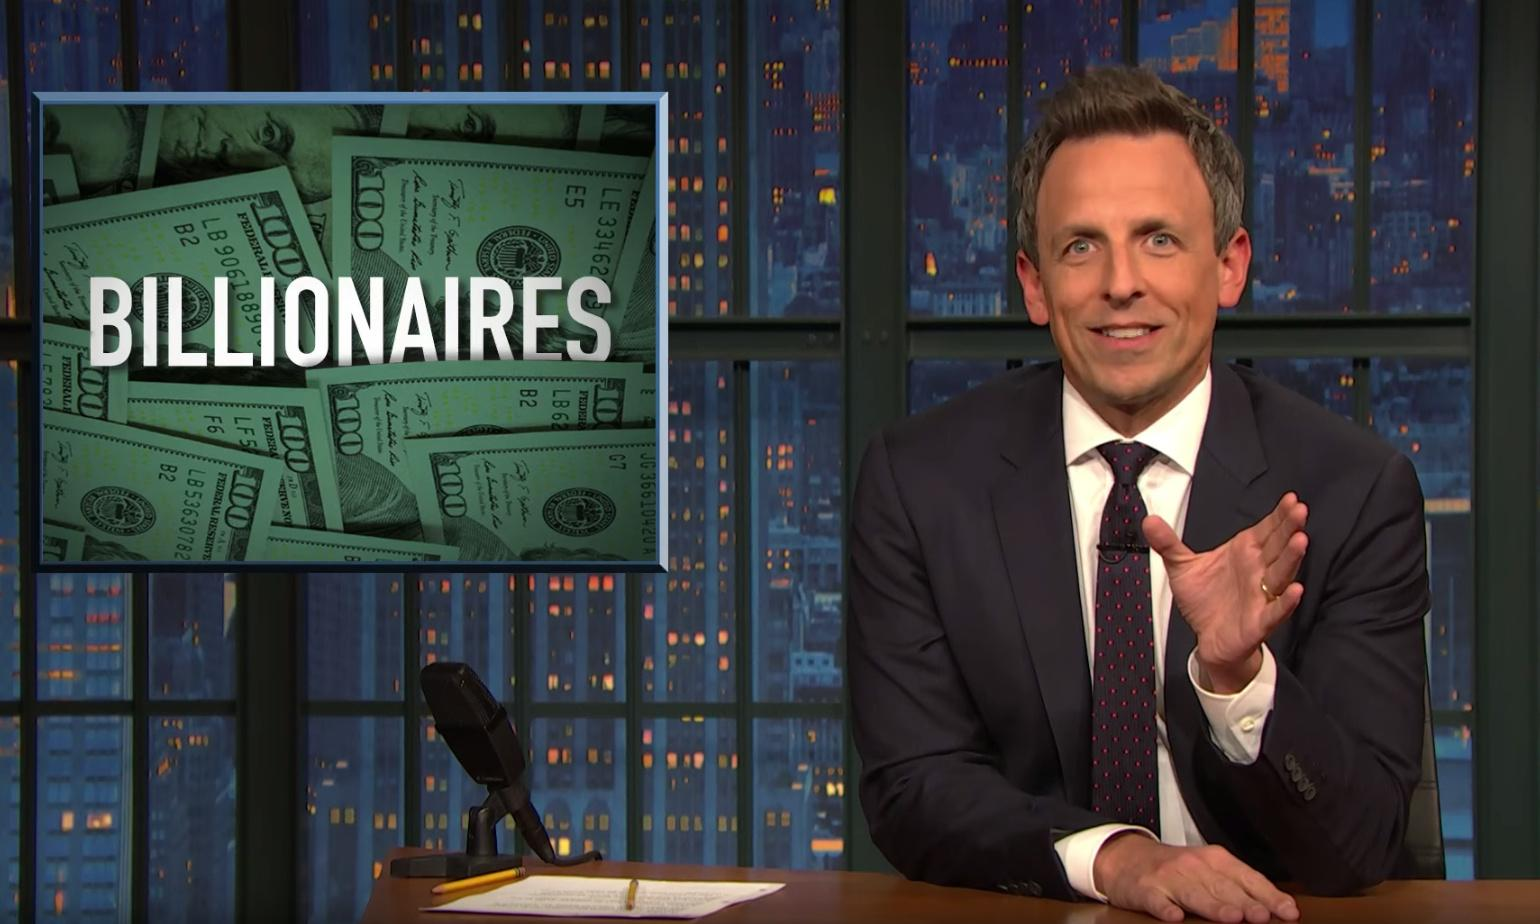 Seth Meyers: 'Voters don't want a self-appointed billionaire savior'